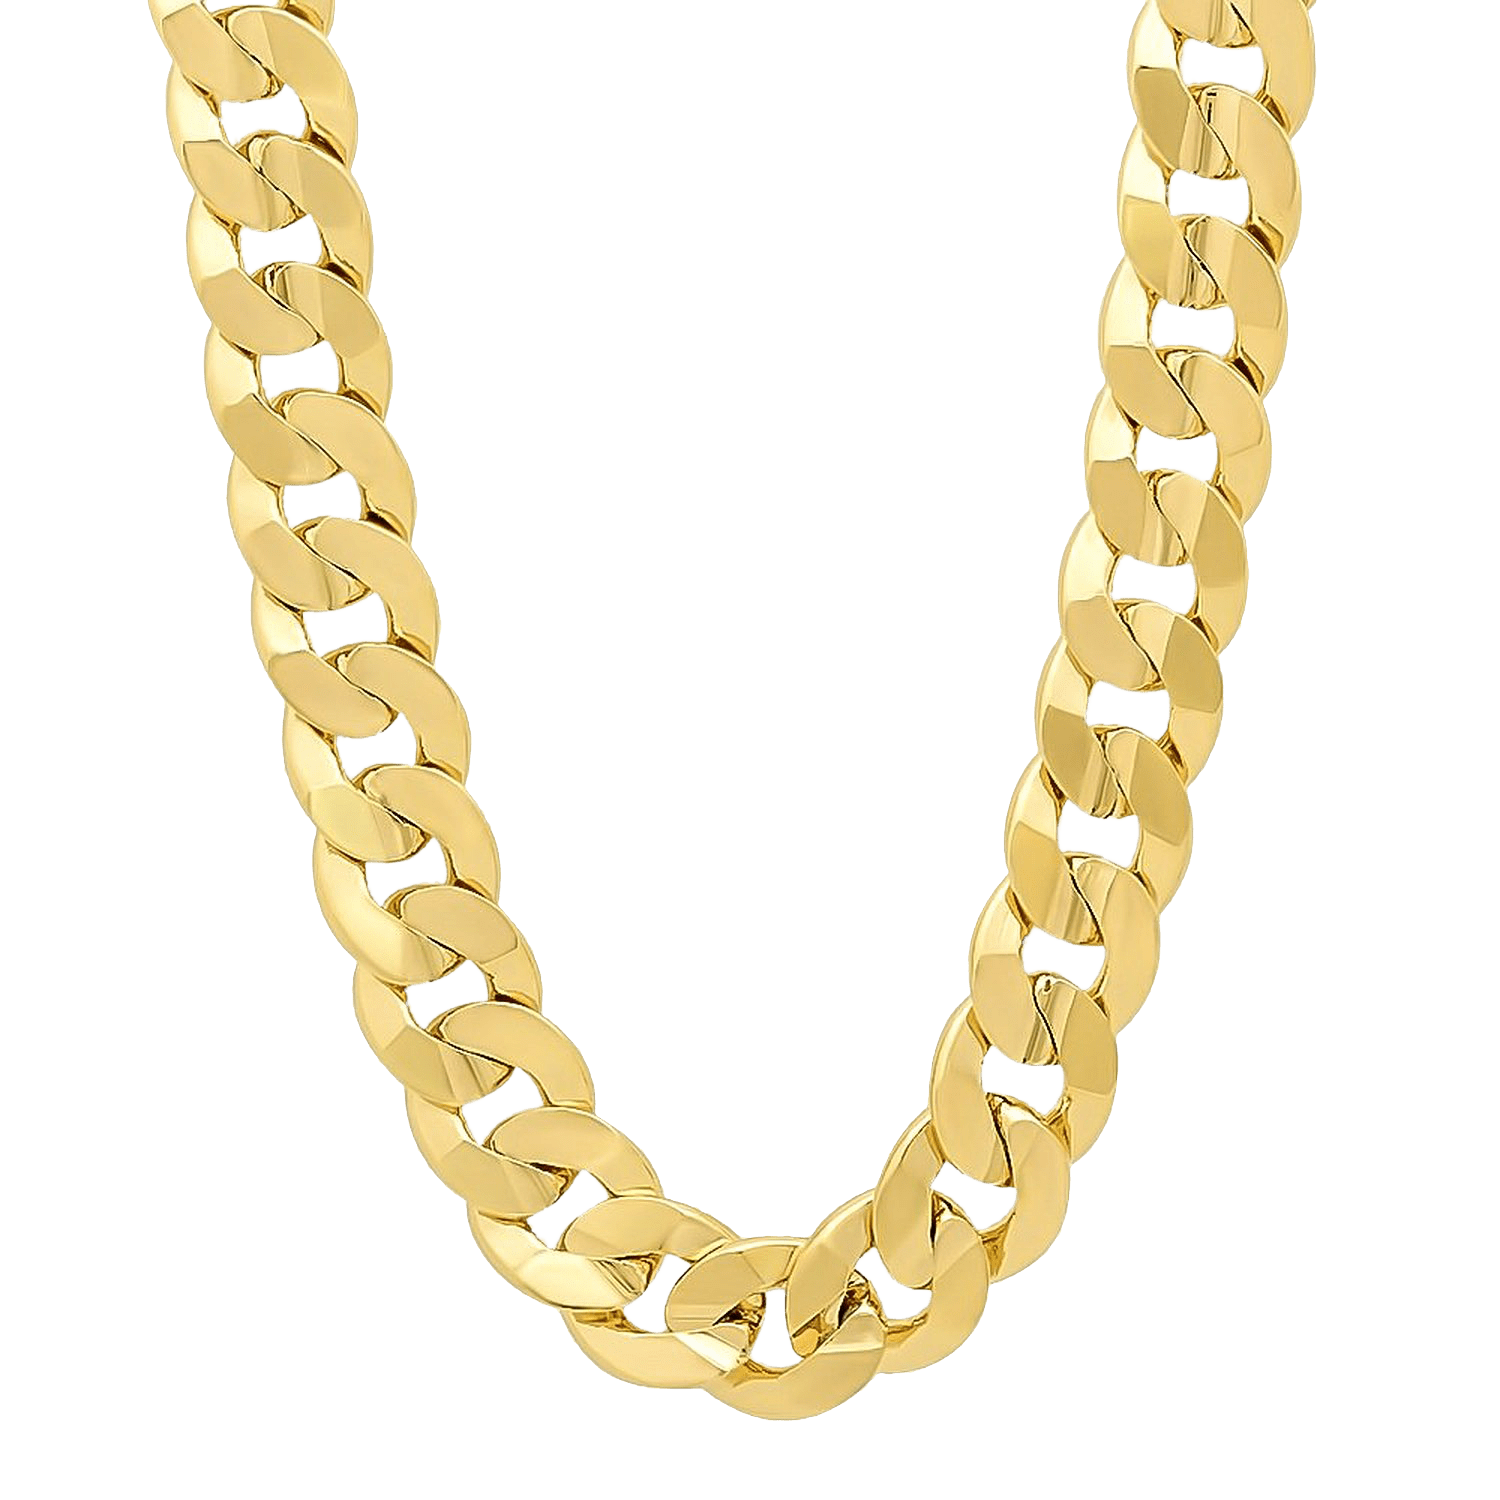 Necklace clipart thug #12